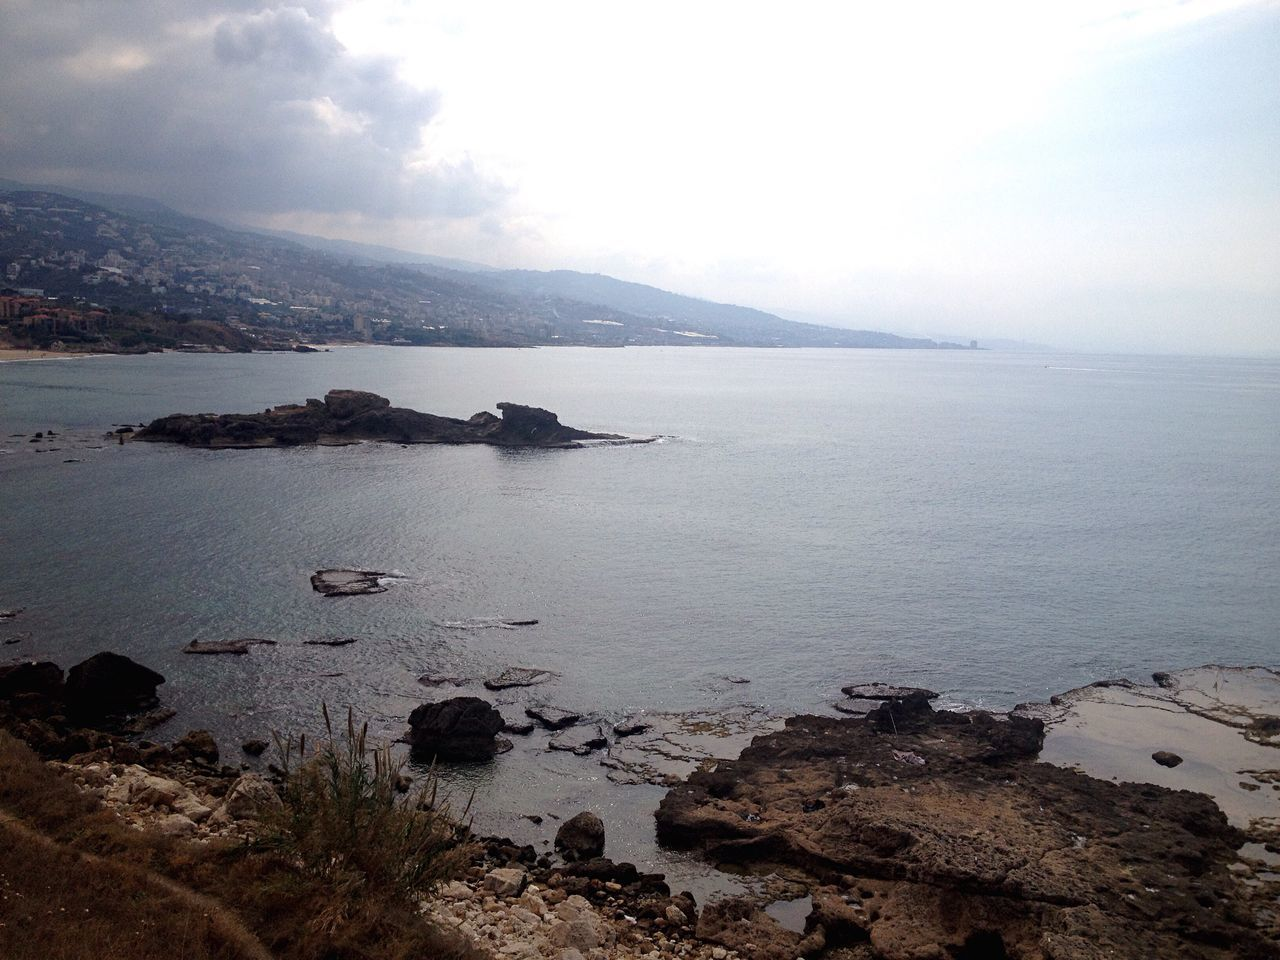 Beach Scenics Sea Rocks And Water Rocky East Mediterranean Lebanon